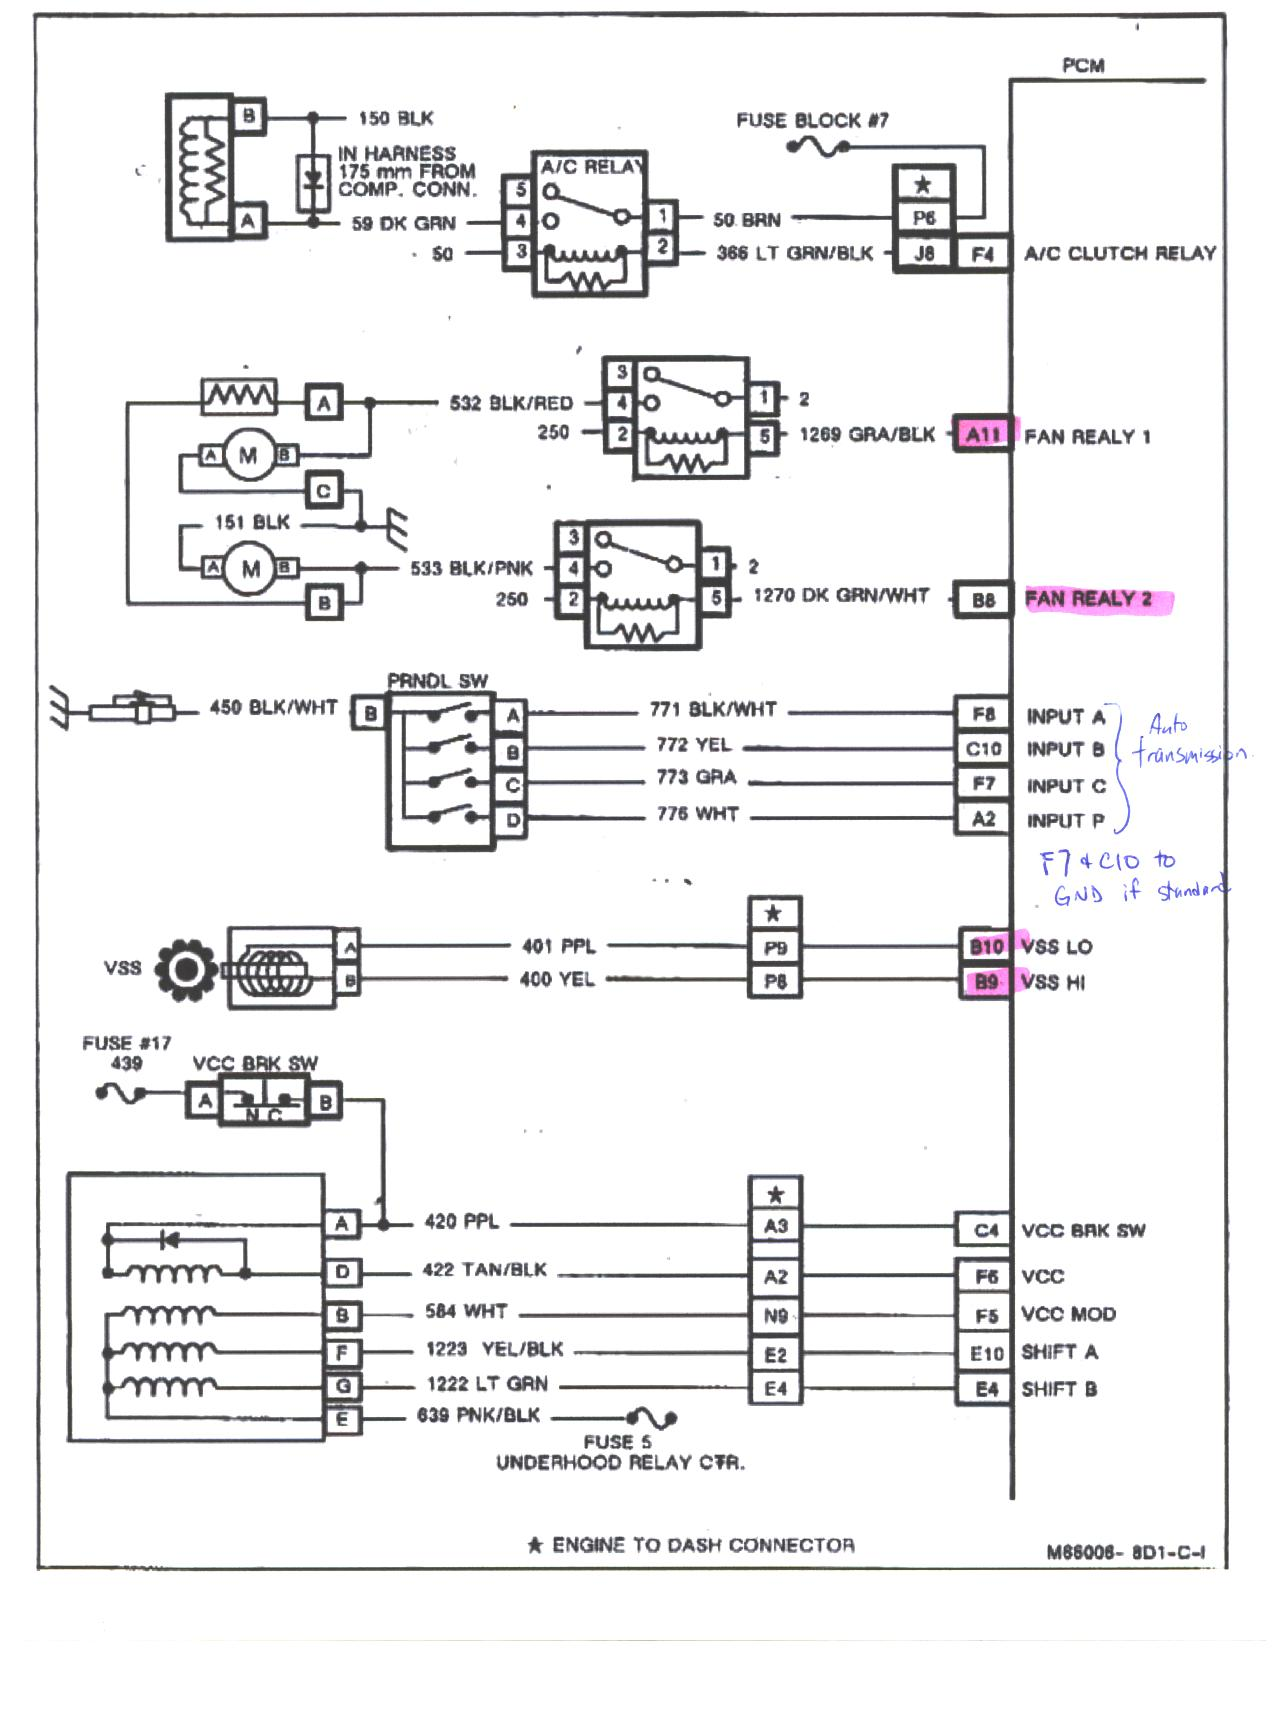 2001 Cadillac Eldorado Wiring Harness - Diagram Schematic Ideas on